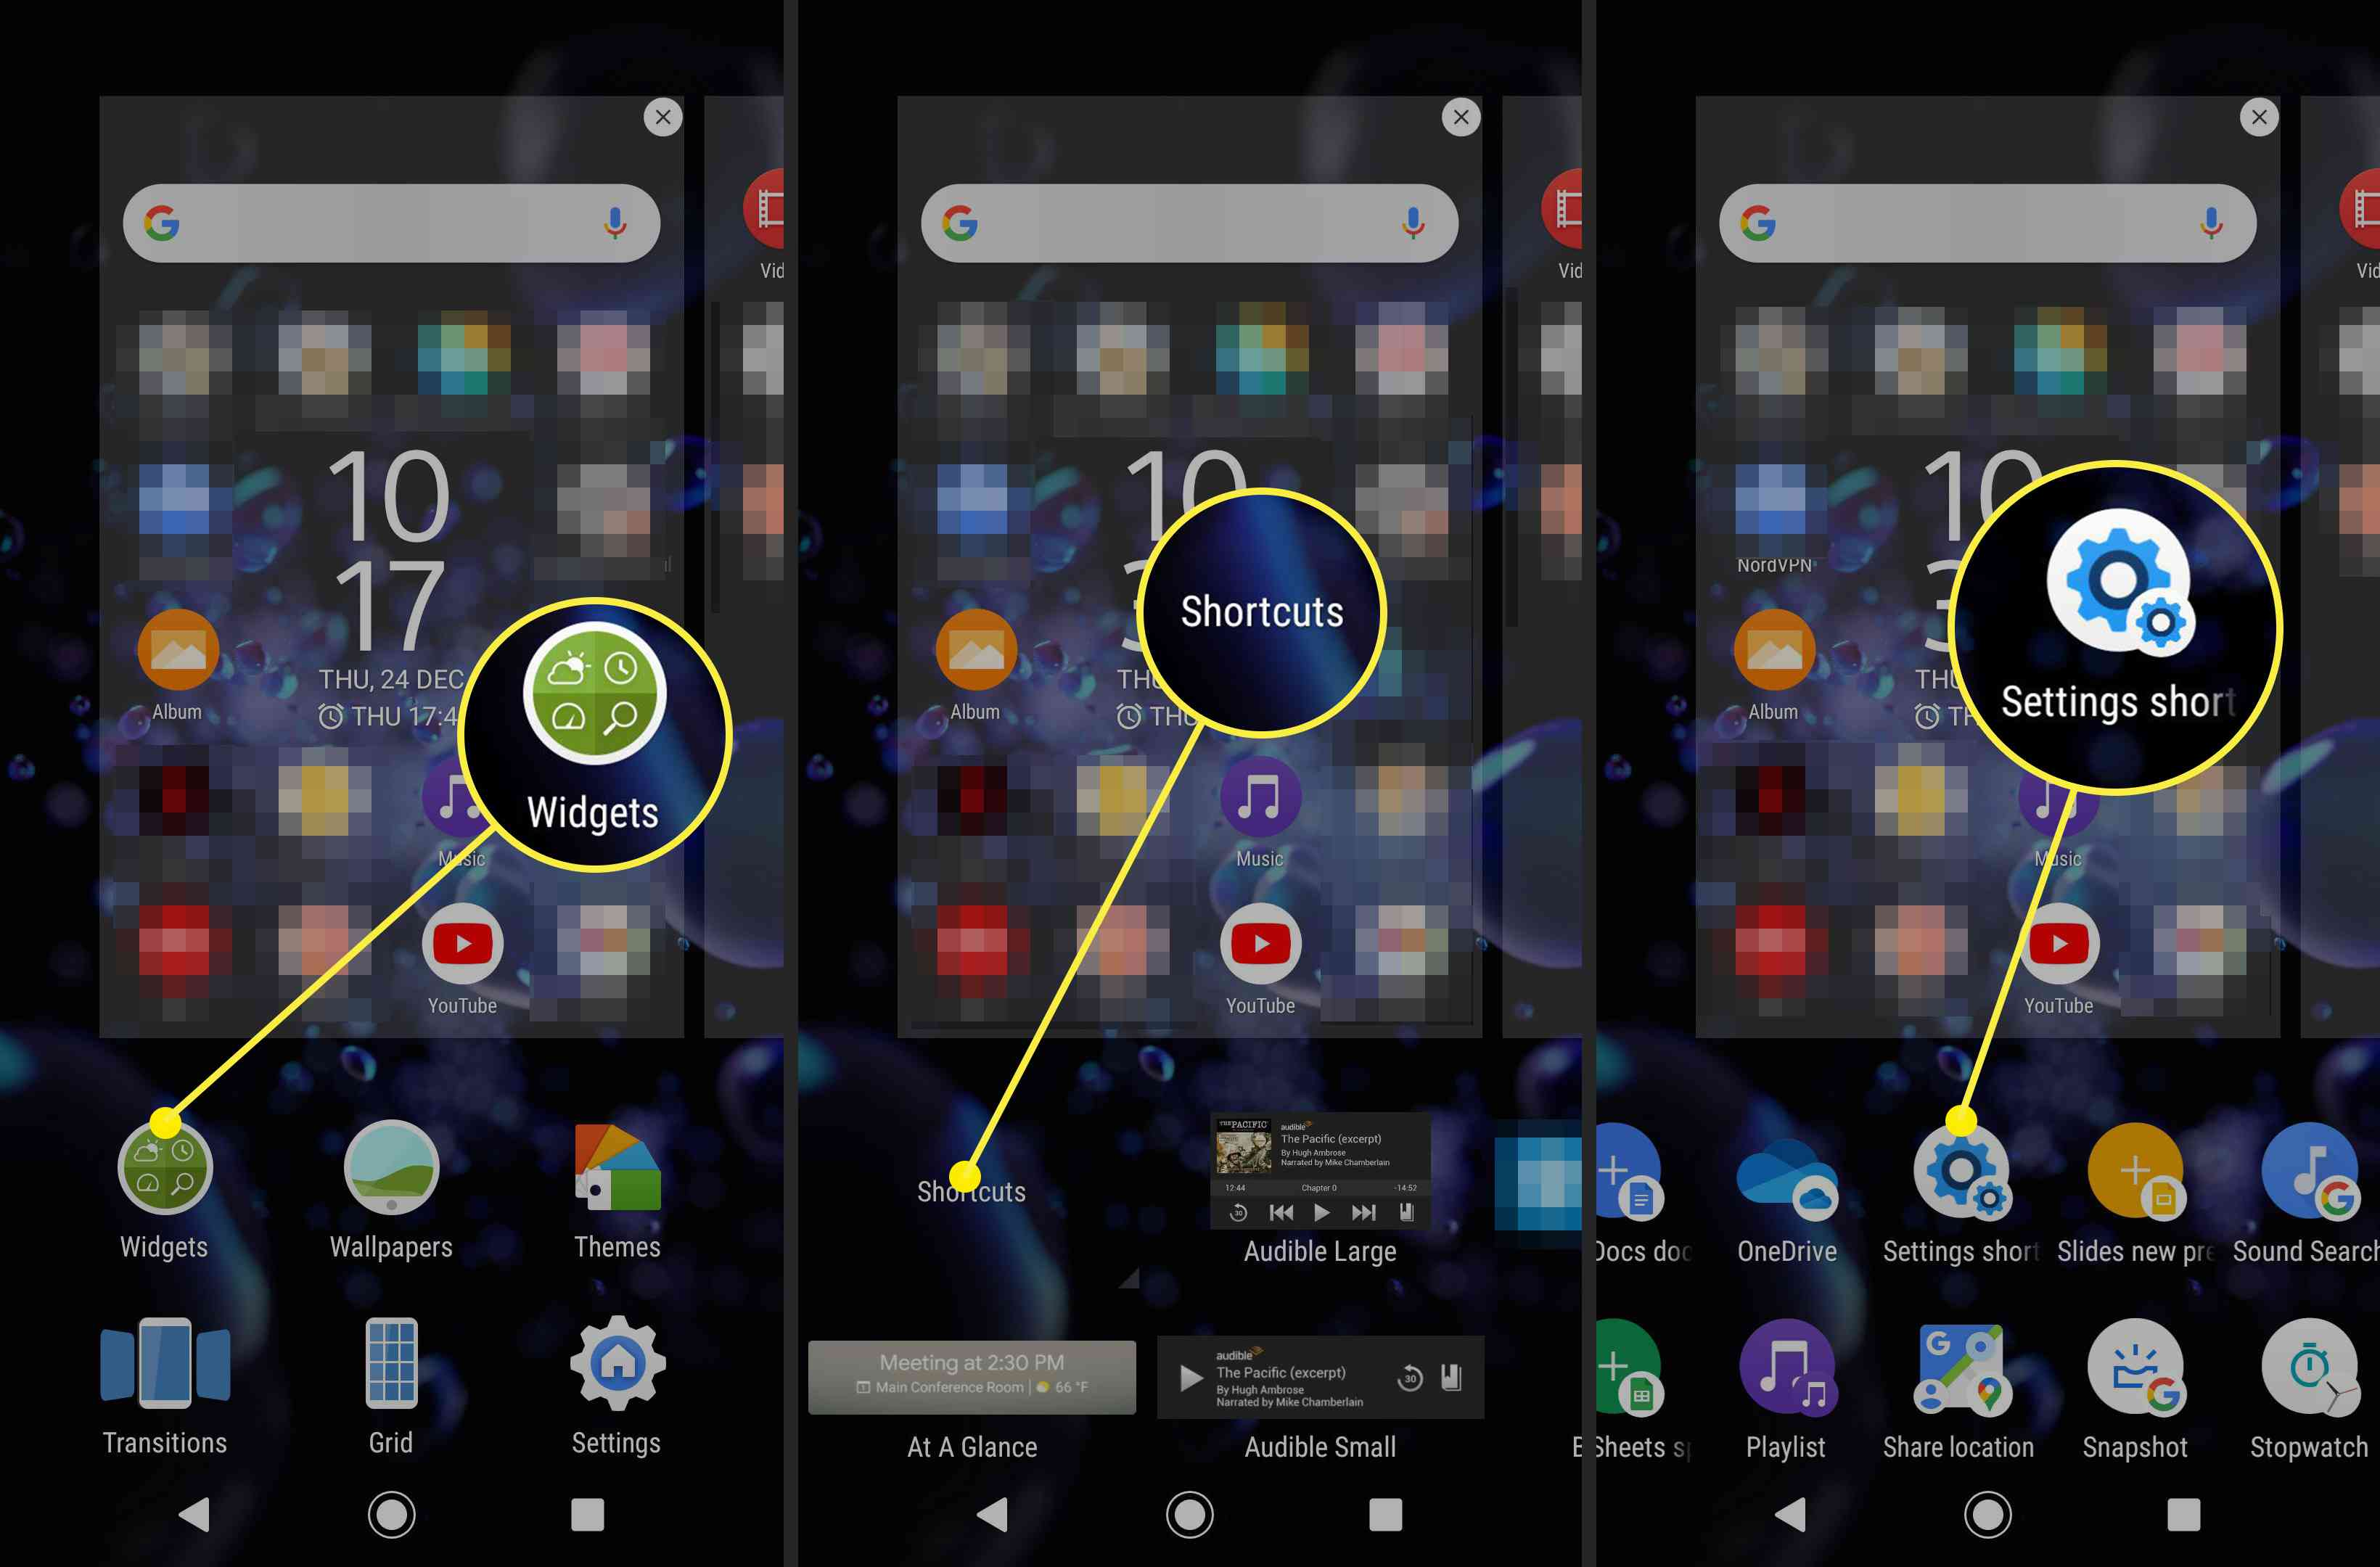 Screenshots showing how to find the settings shortcuts in Android.